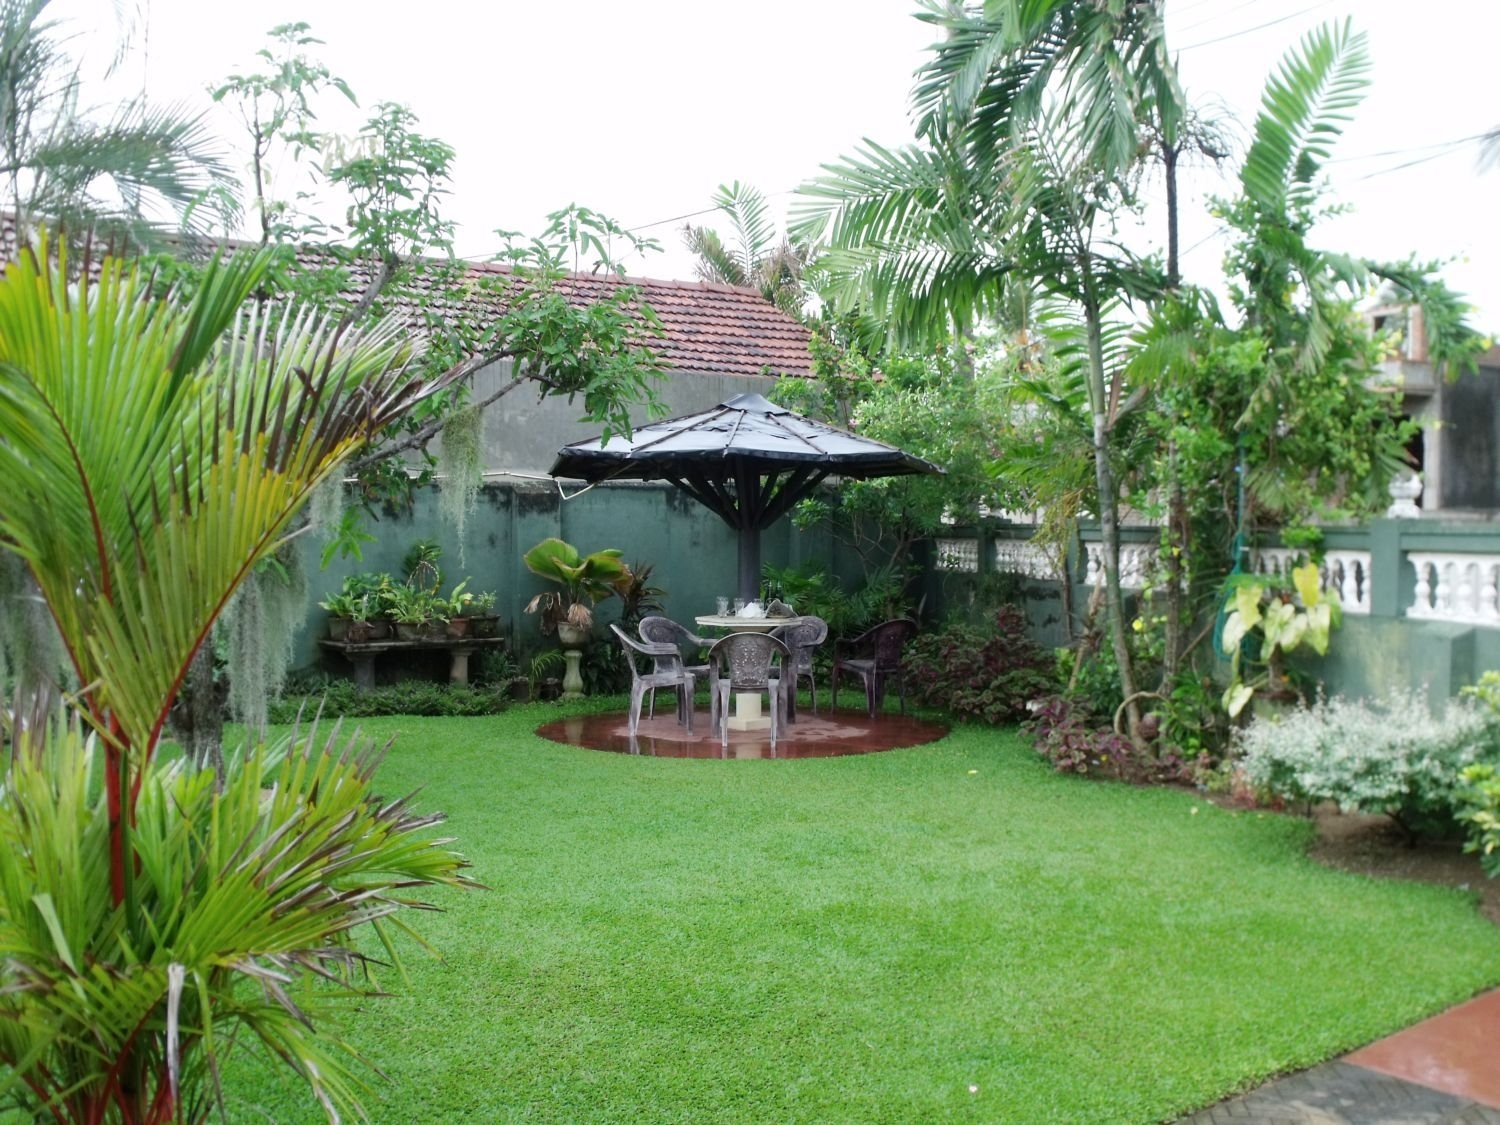 In Sri Lanka Landscaping Design | Landscaping And Gardening Design regarding Home Garden Design Sri Lanka